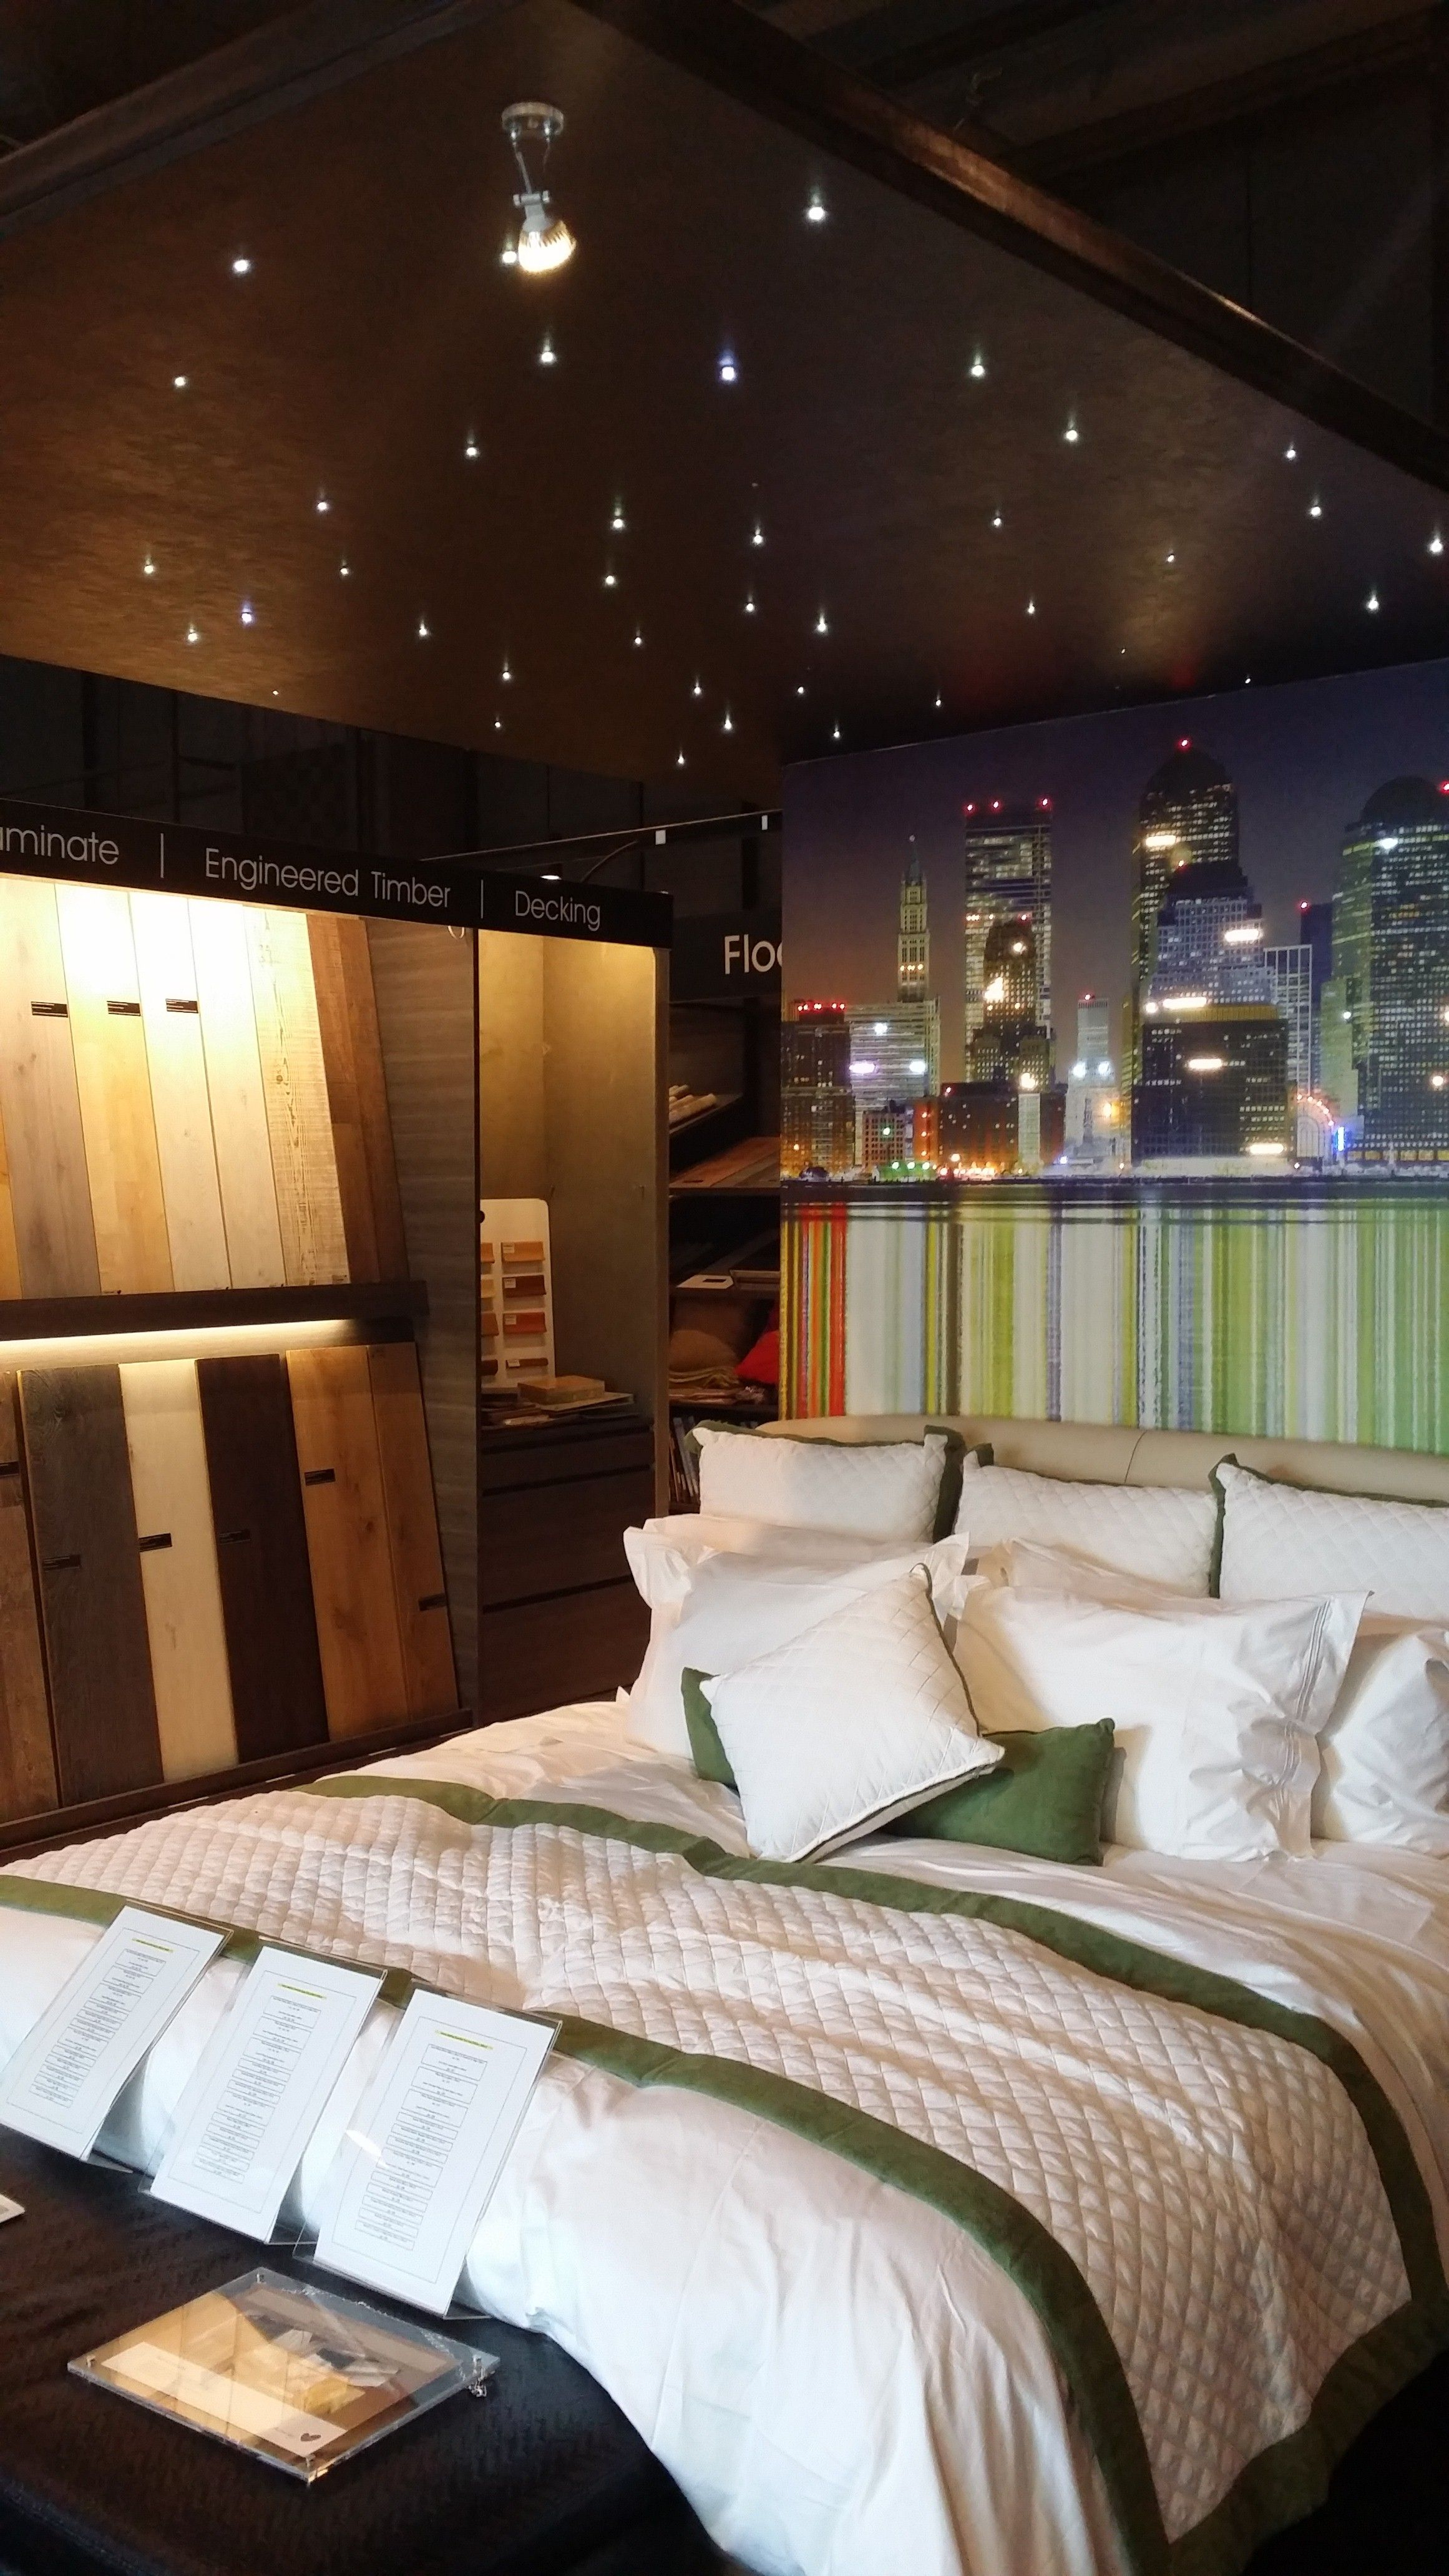 Light up your bedroom wall and ceiling with Illuminated